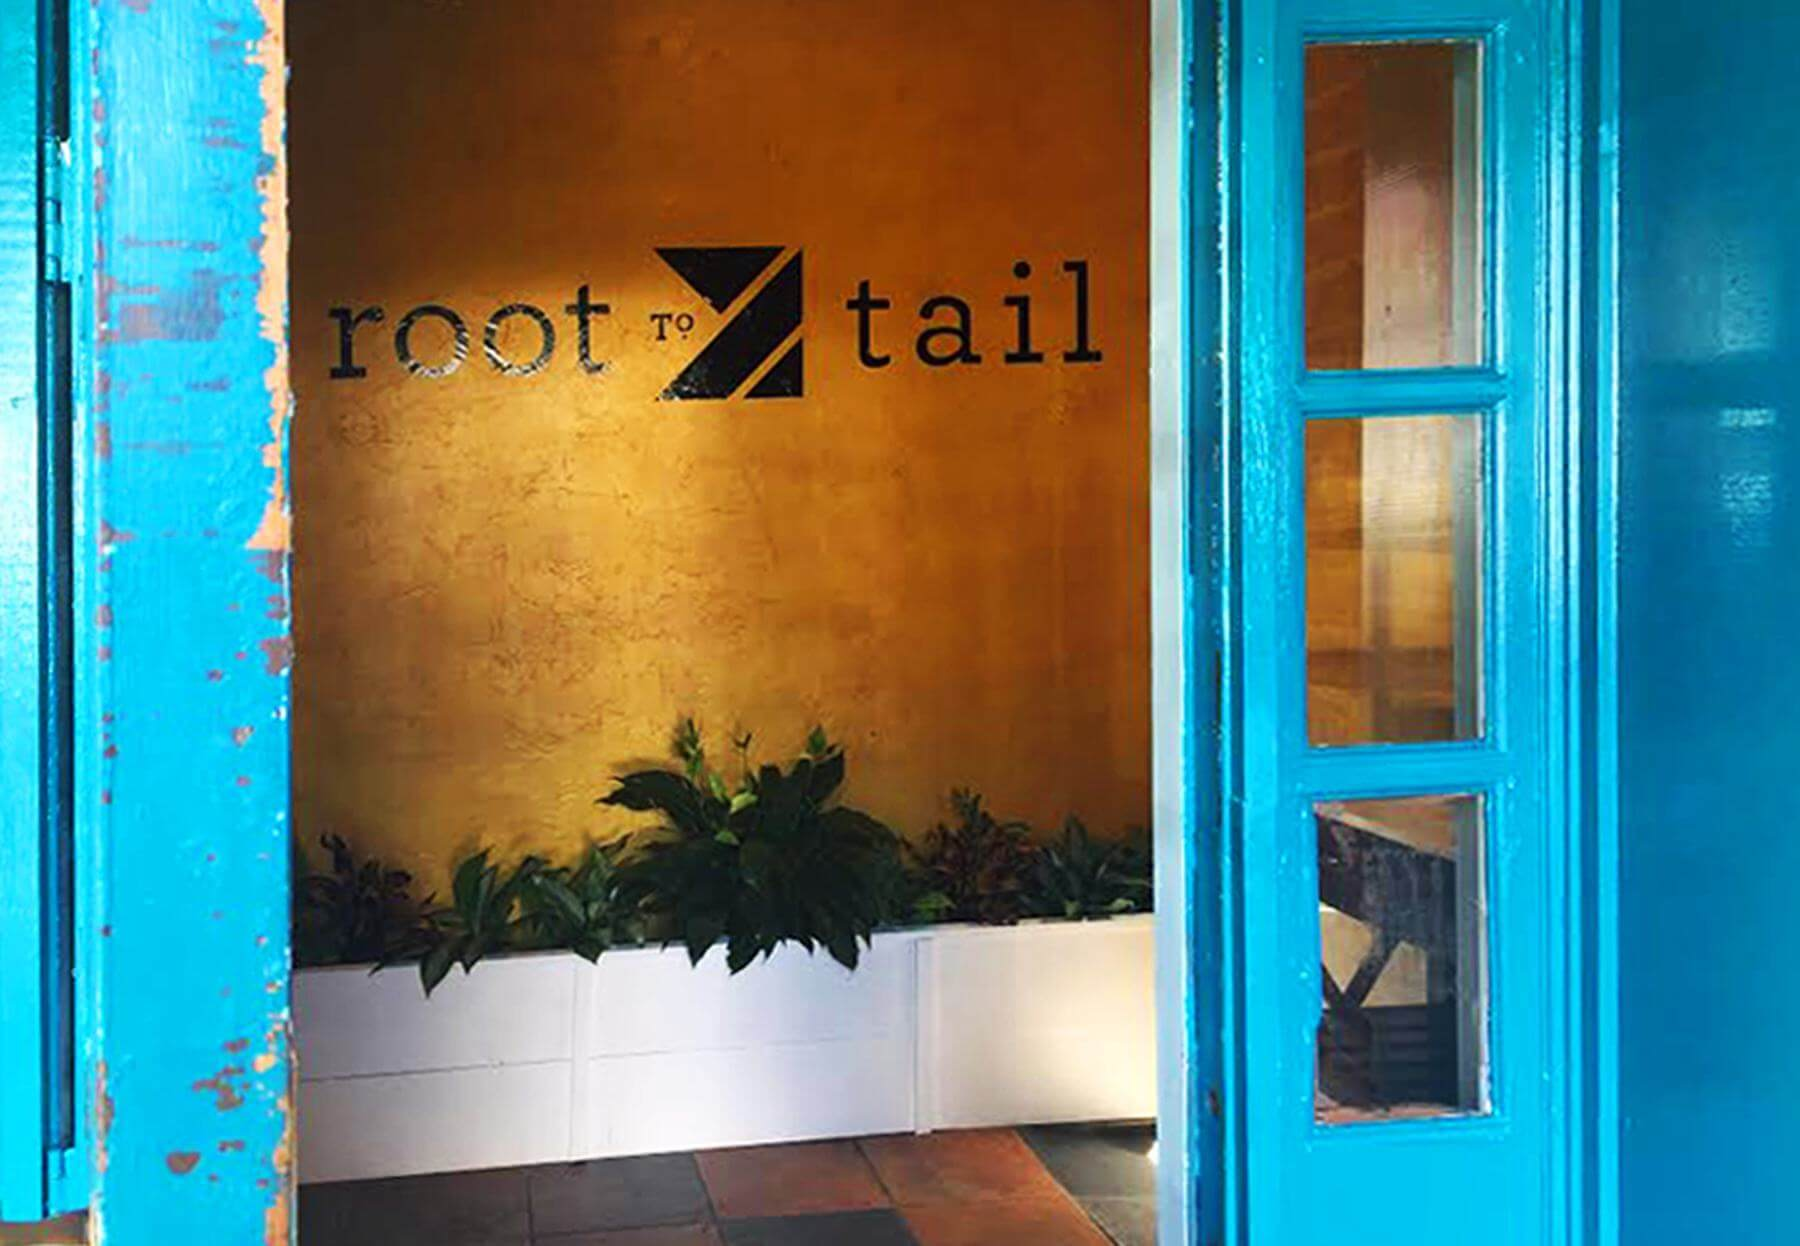 The striking new entrance to Root to Tail